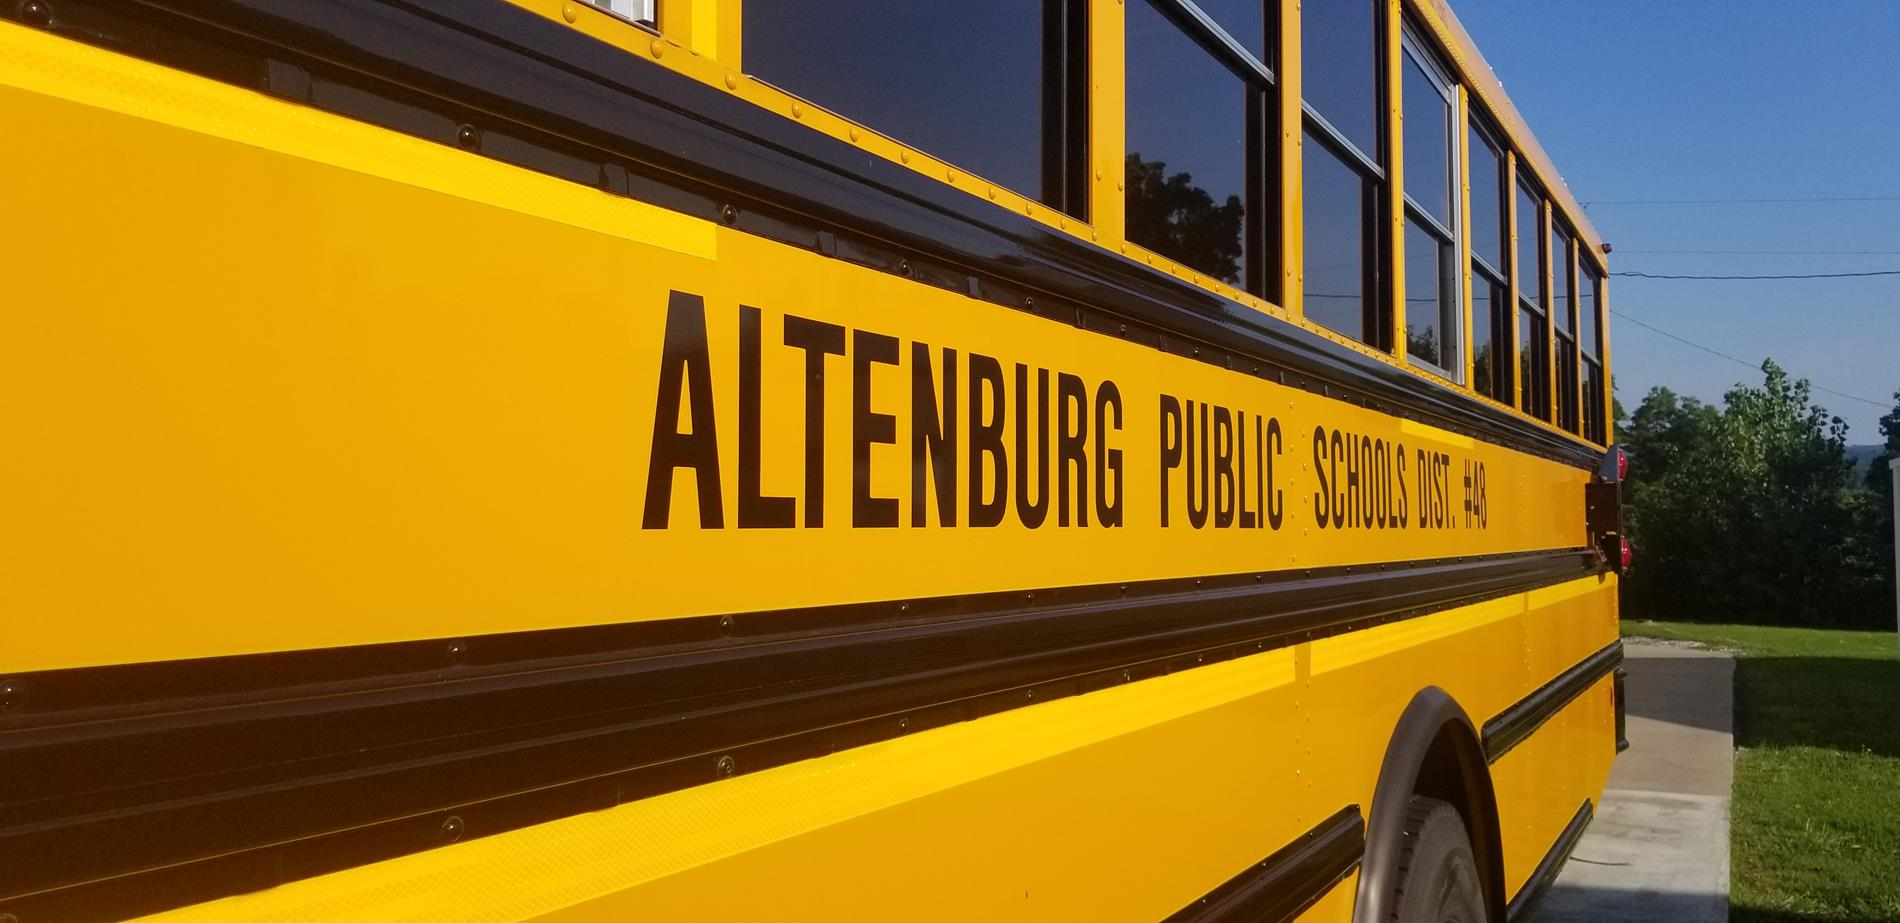 Altenburg Public School Bus